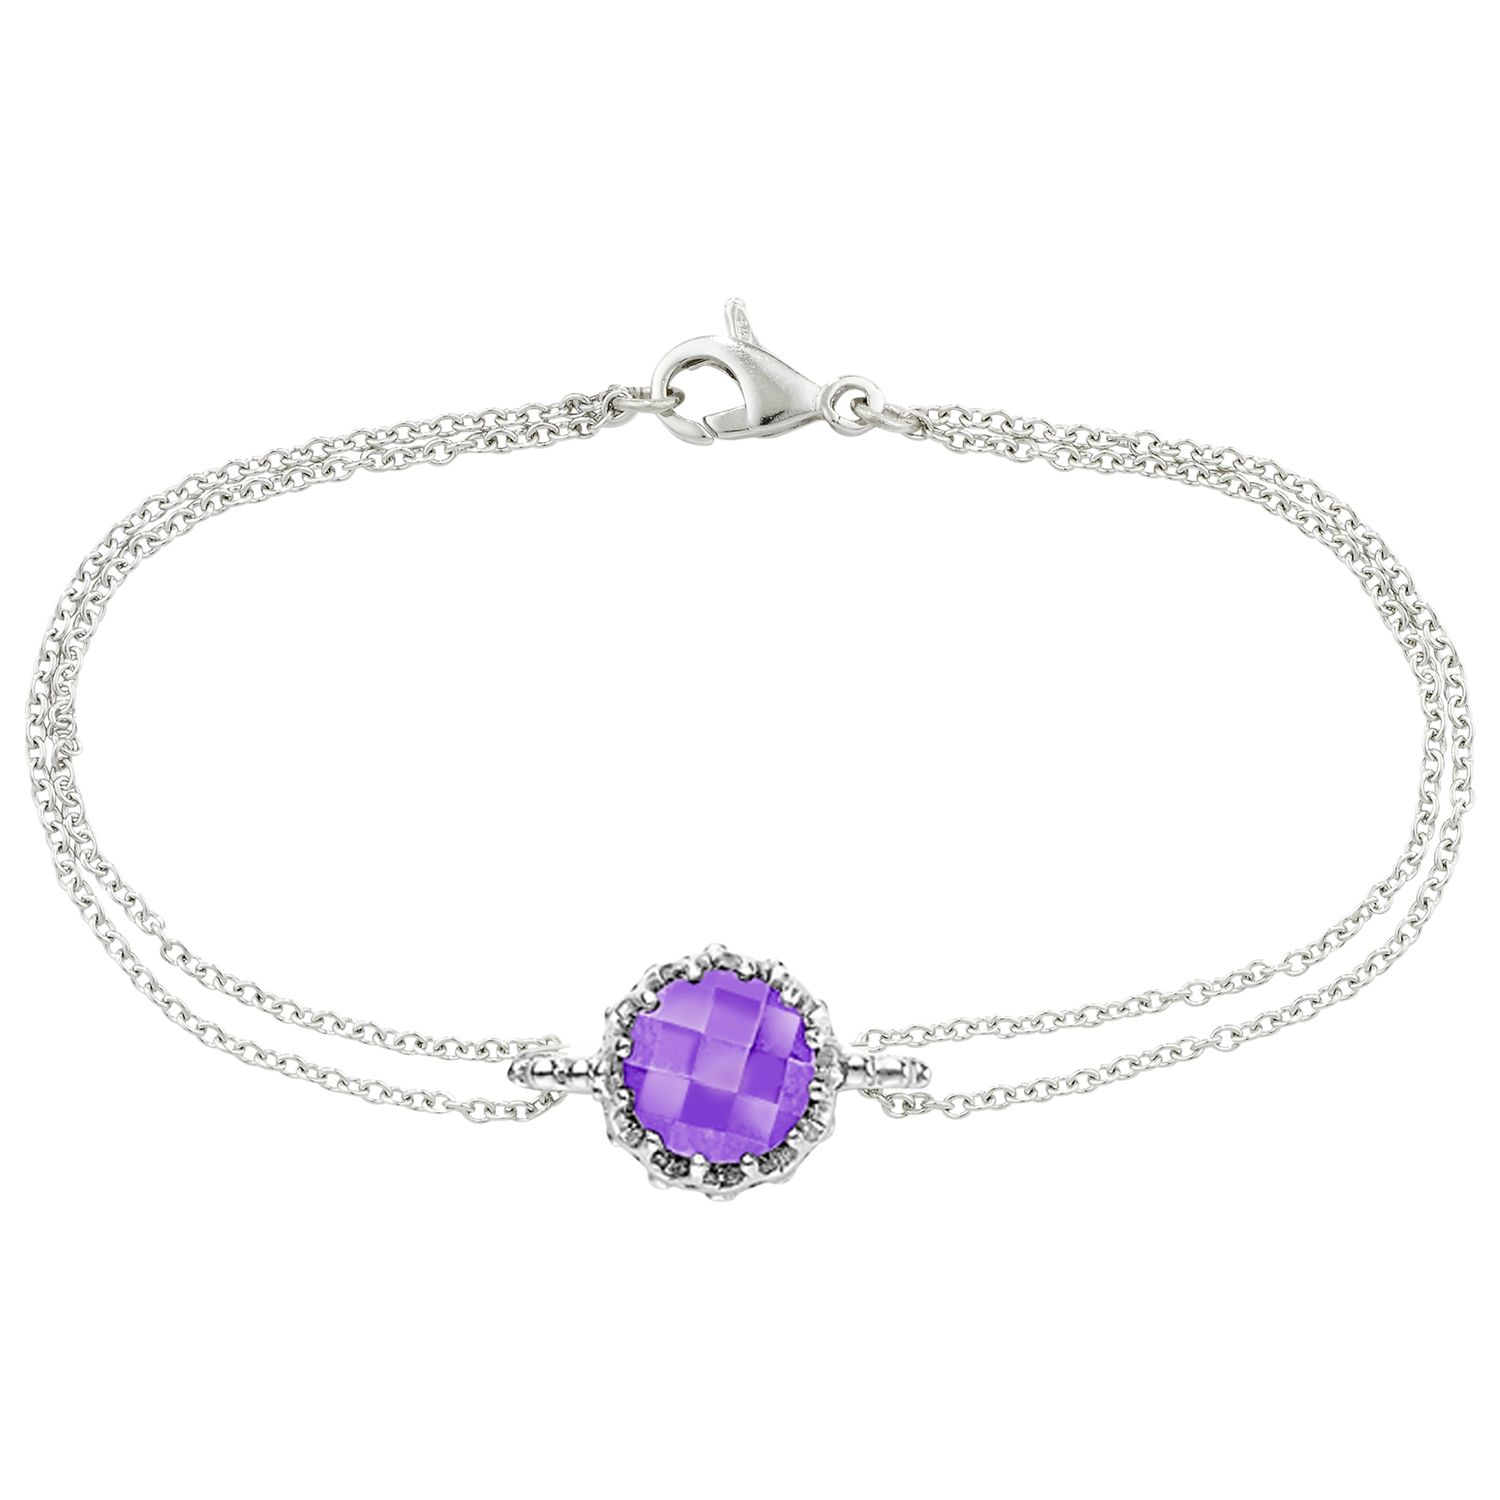 London Road London Road Bloomsbury 9ct White Gold Chequer Cut Amethyst Coronation Bracelet, White Gold